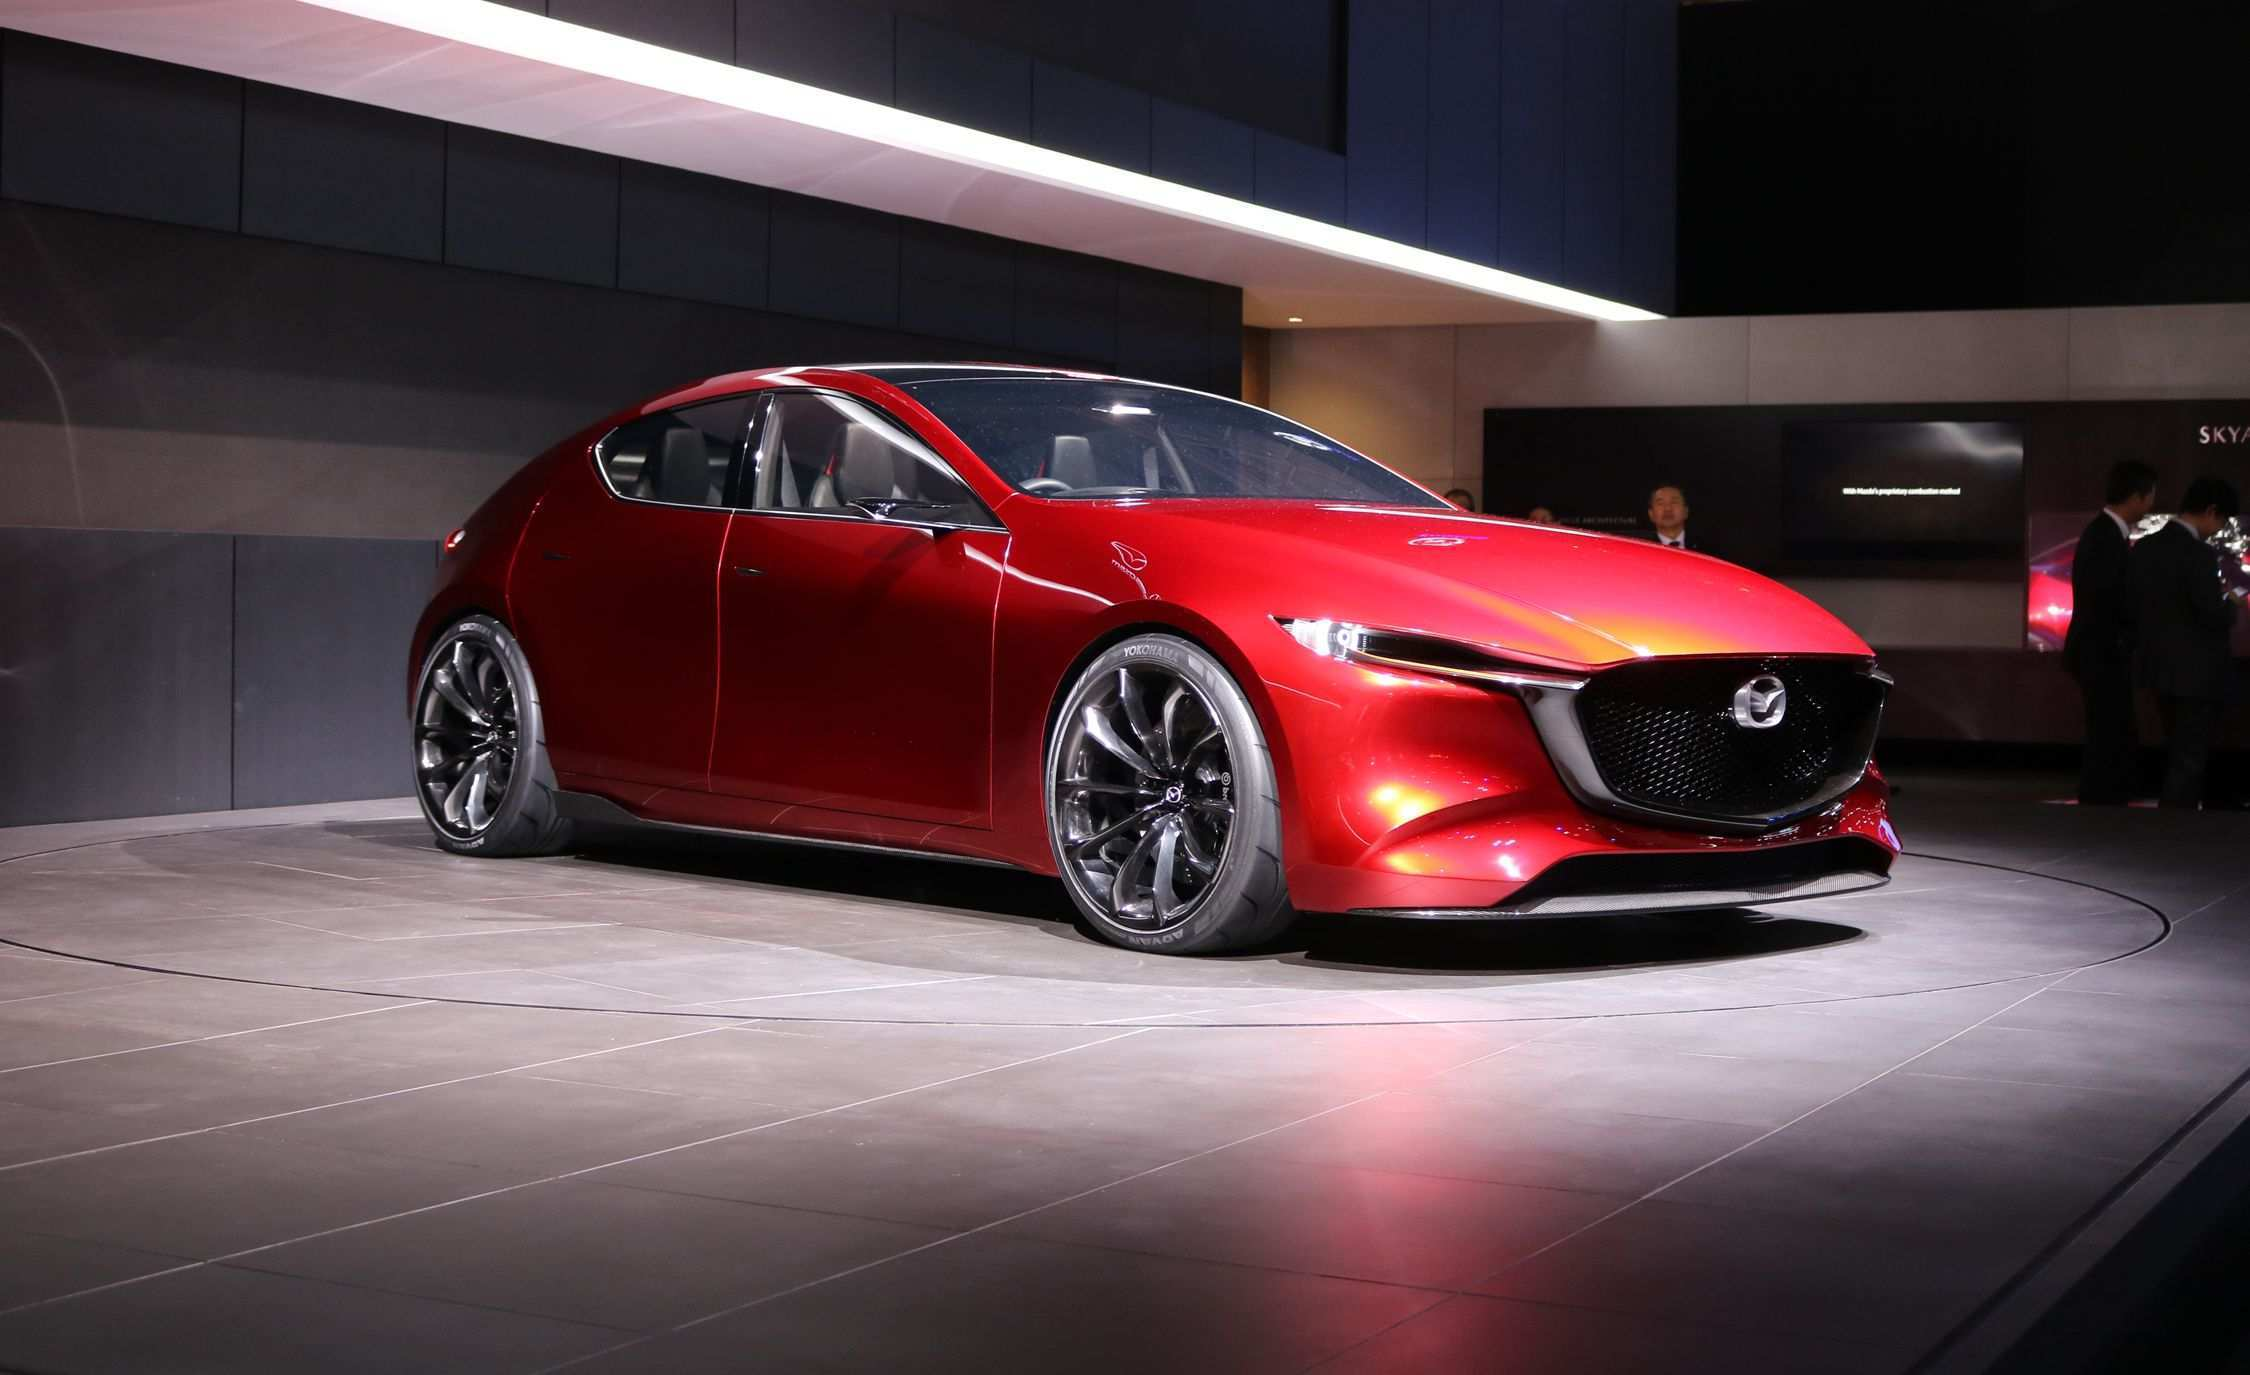 62 Great Mazda 3 Kai 2020 Research New with Mazda 3 Kai 2020